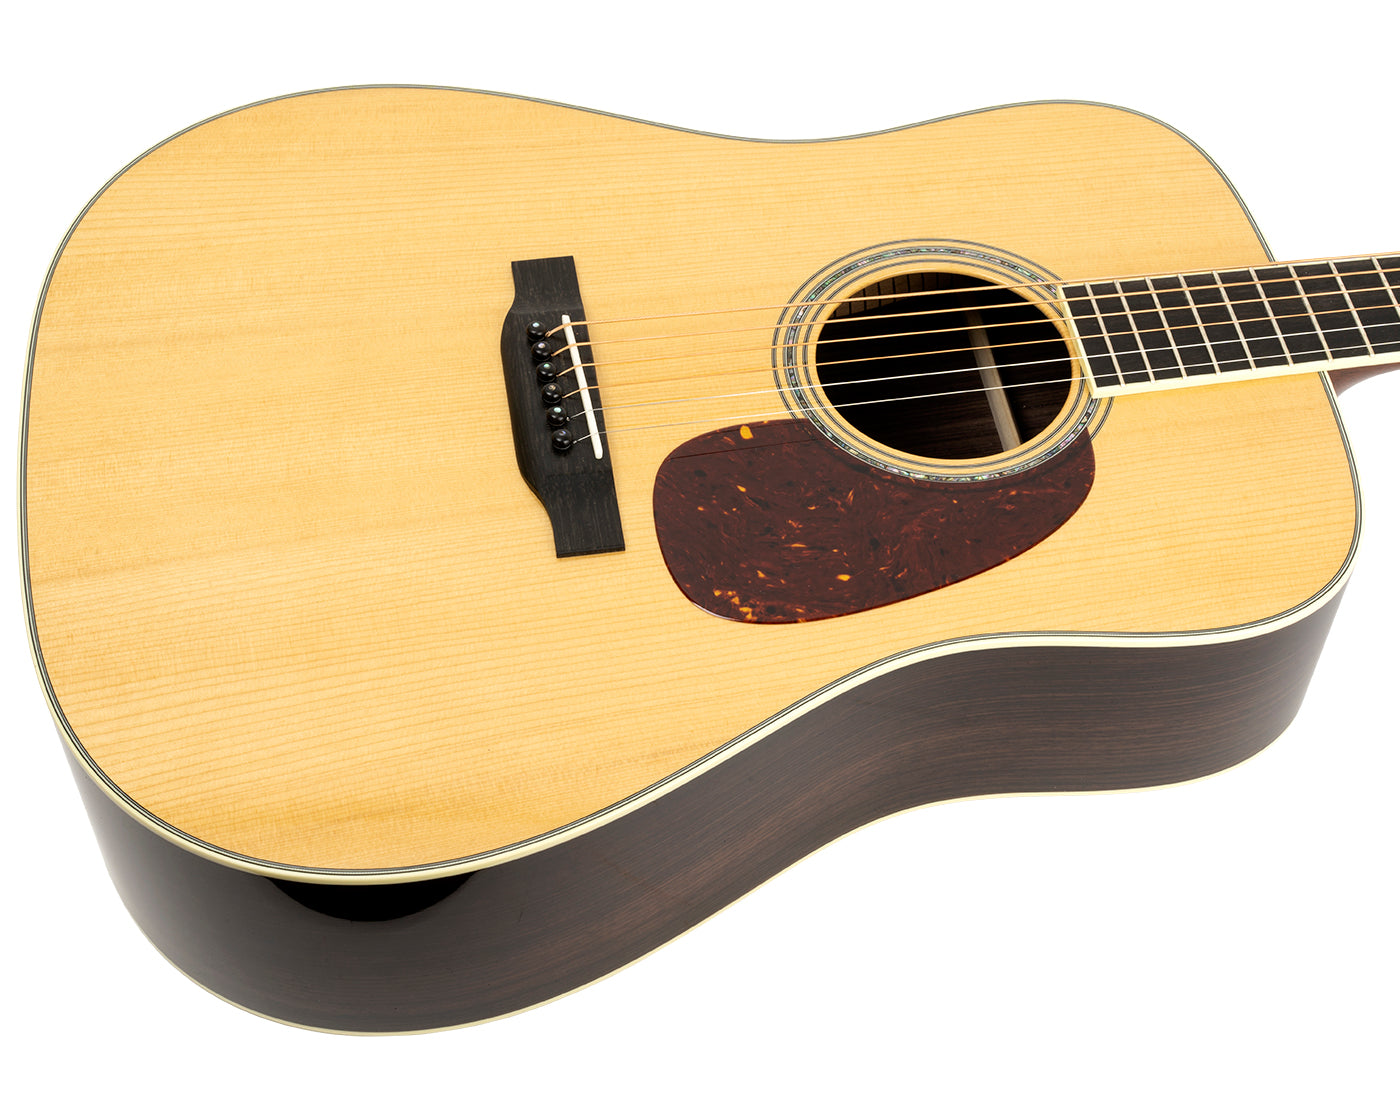 New Collings D3A Baked Top image 3